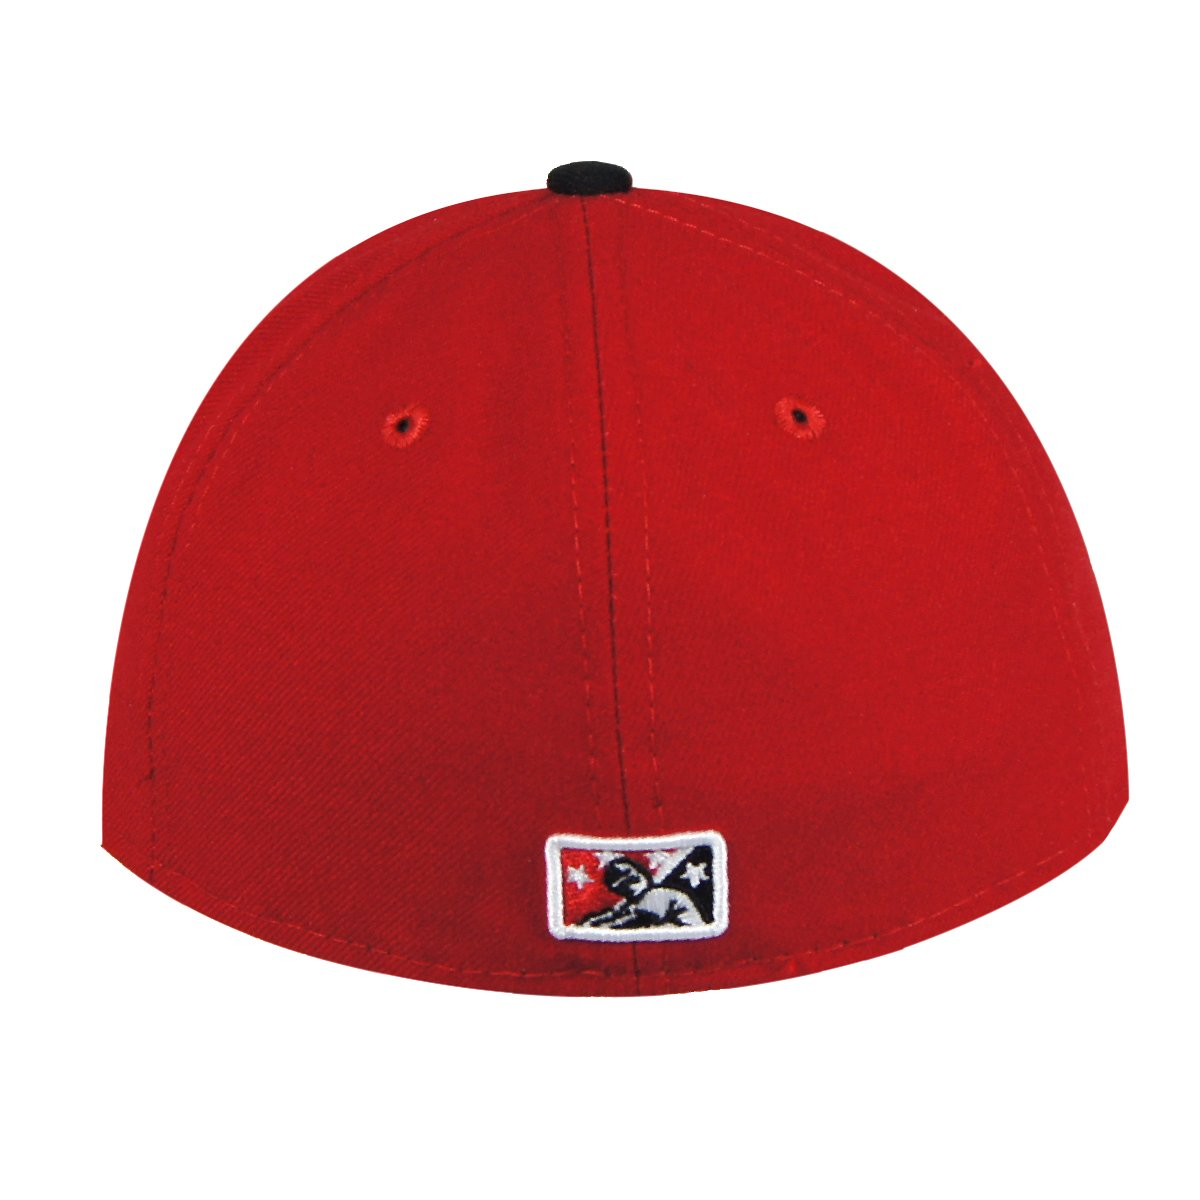 ce3d4b60fb6b1 Amazon.com   El Paso Chihuahuas New Era MiLB Alternate Color Road Fitted Hat  (Red) 7 1 2   Sports   Outdoors